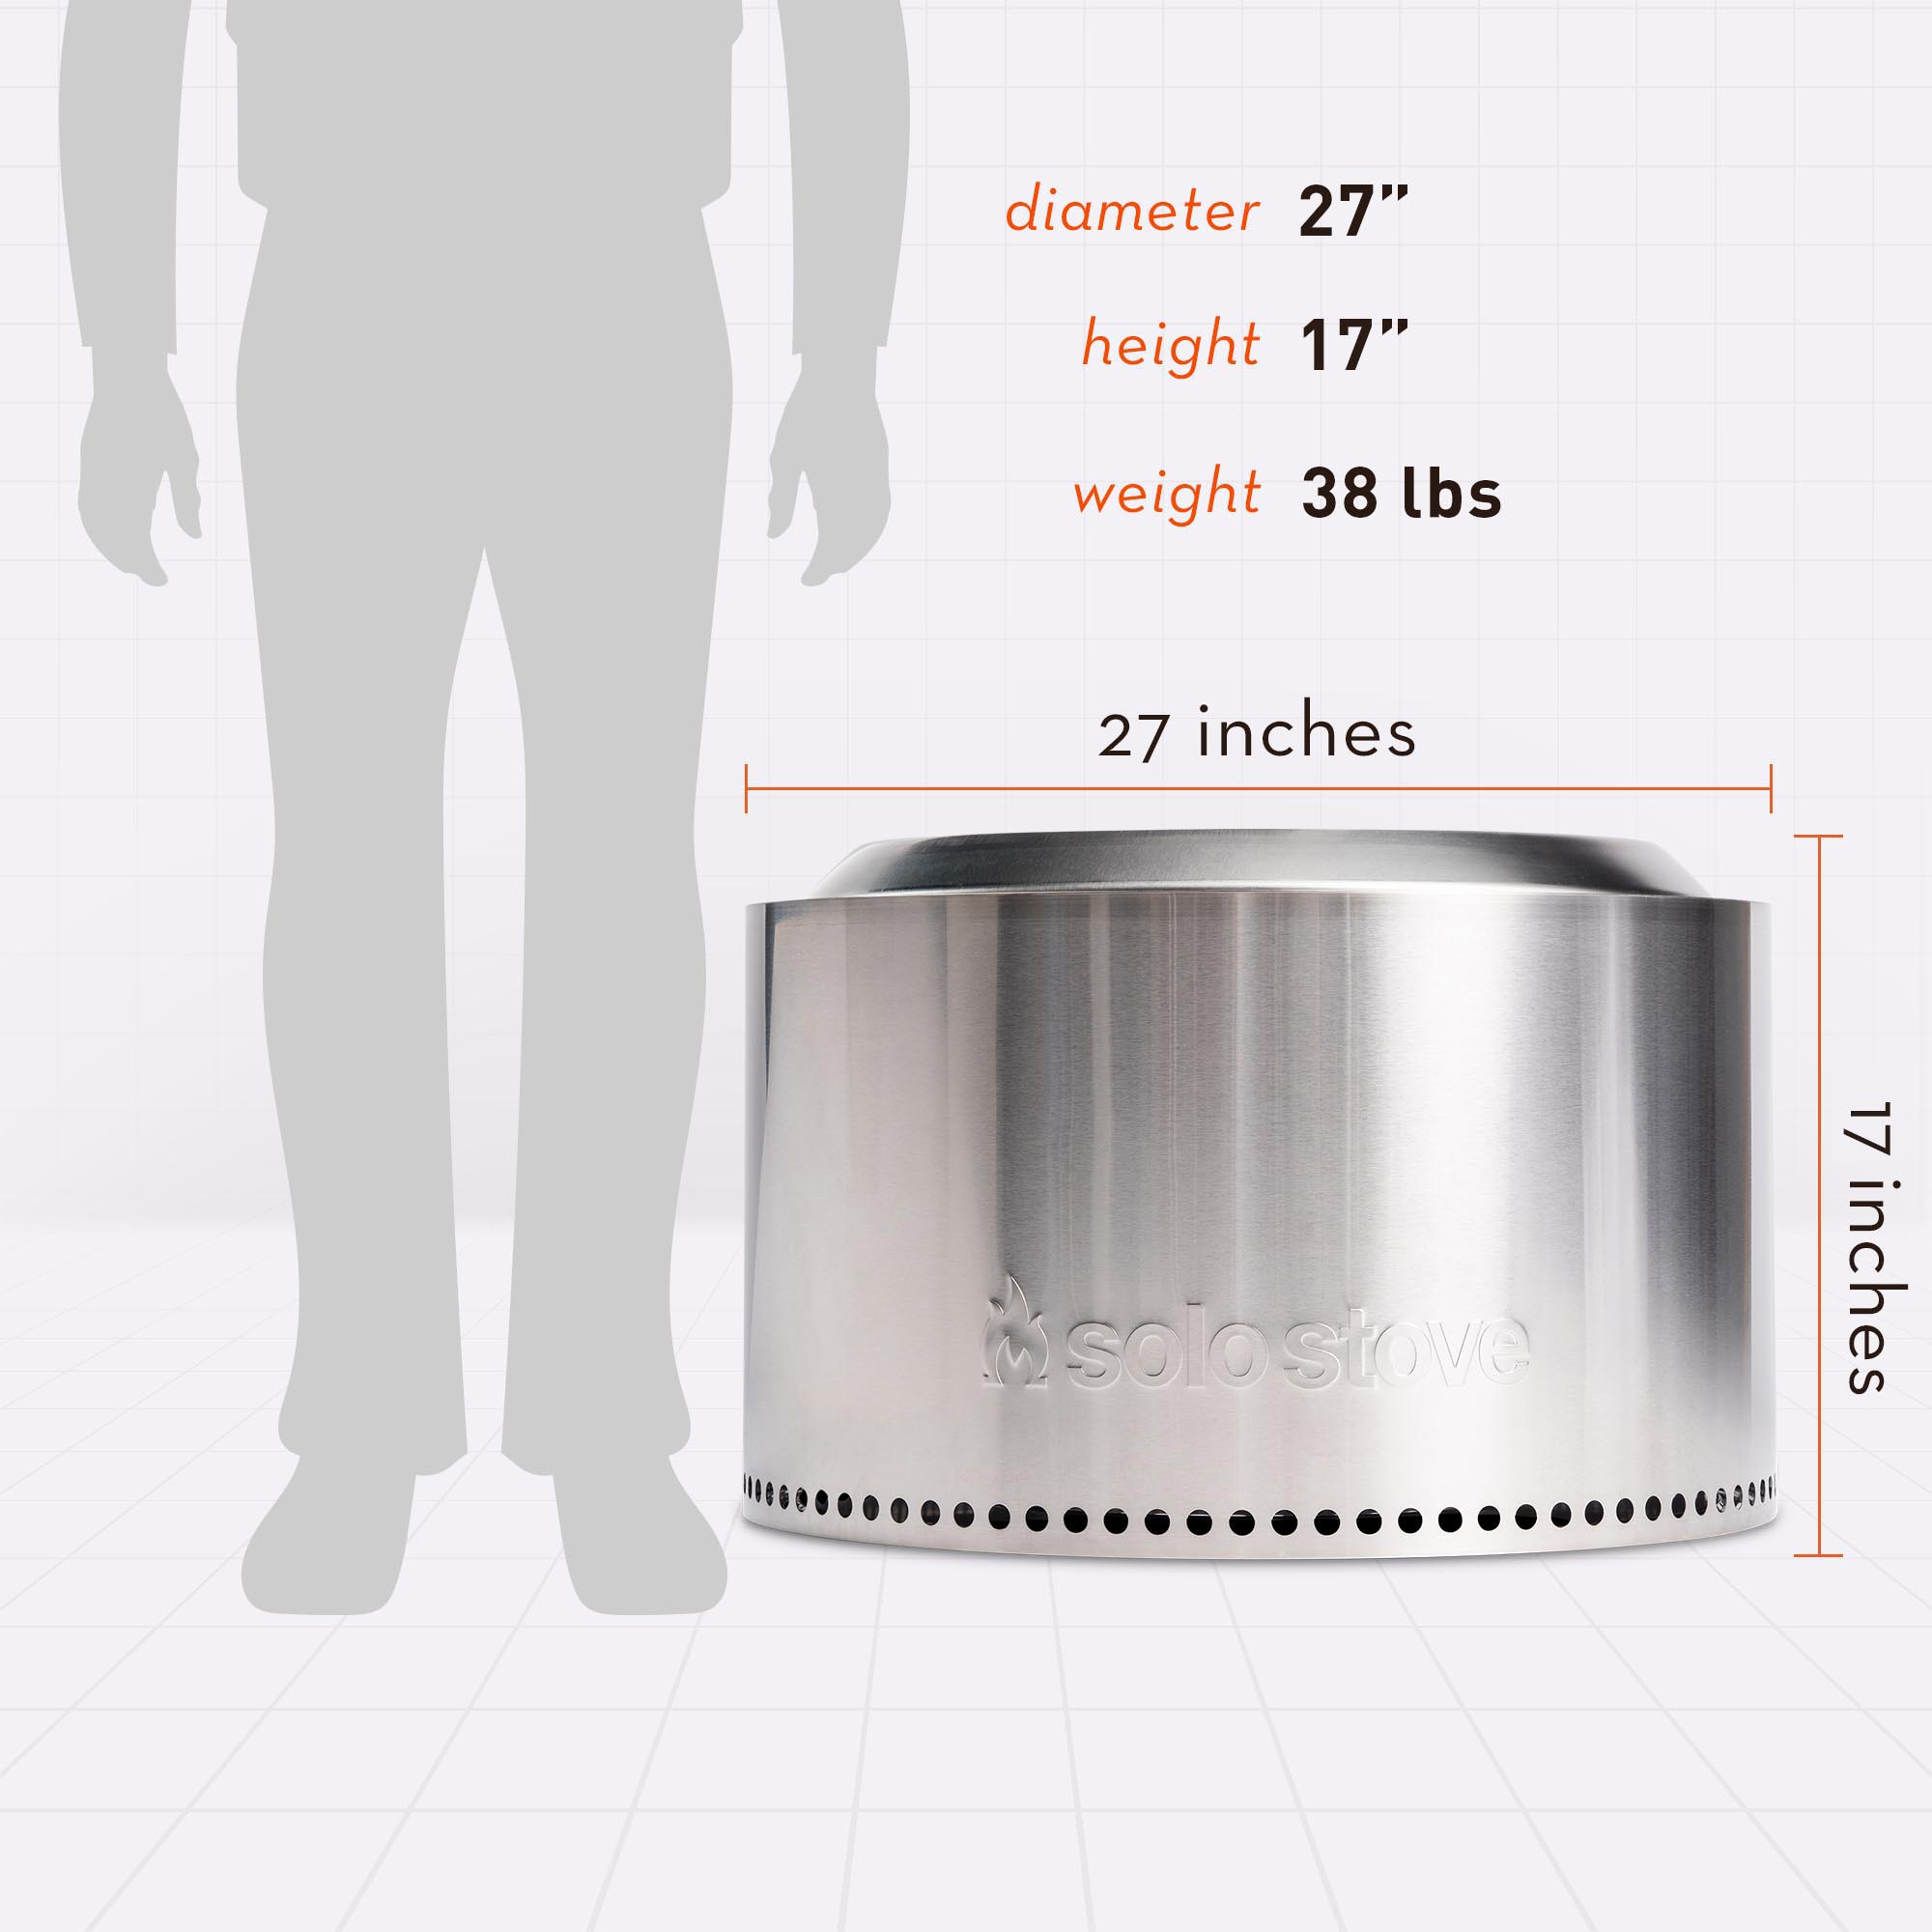 15 Inches Tall, 26.5 Inches Wide